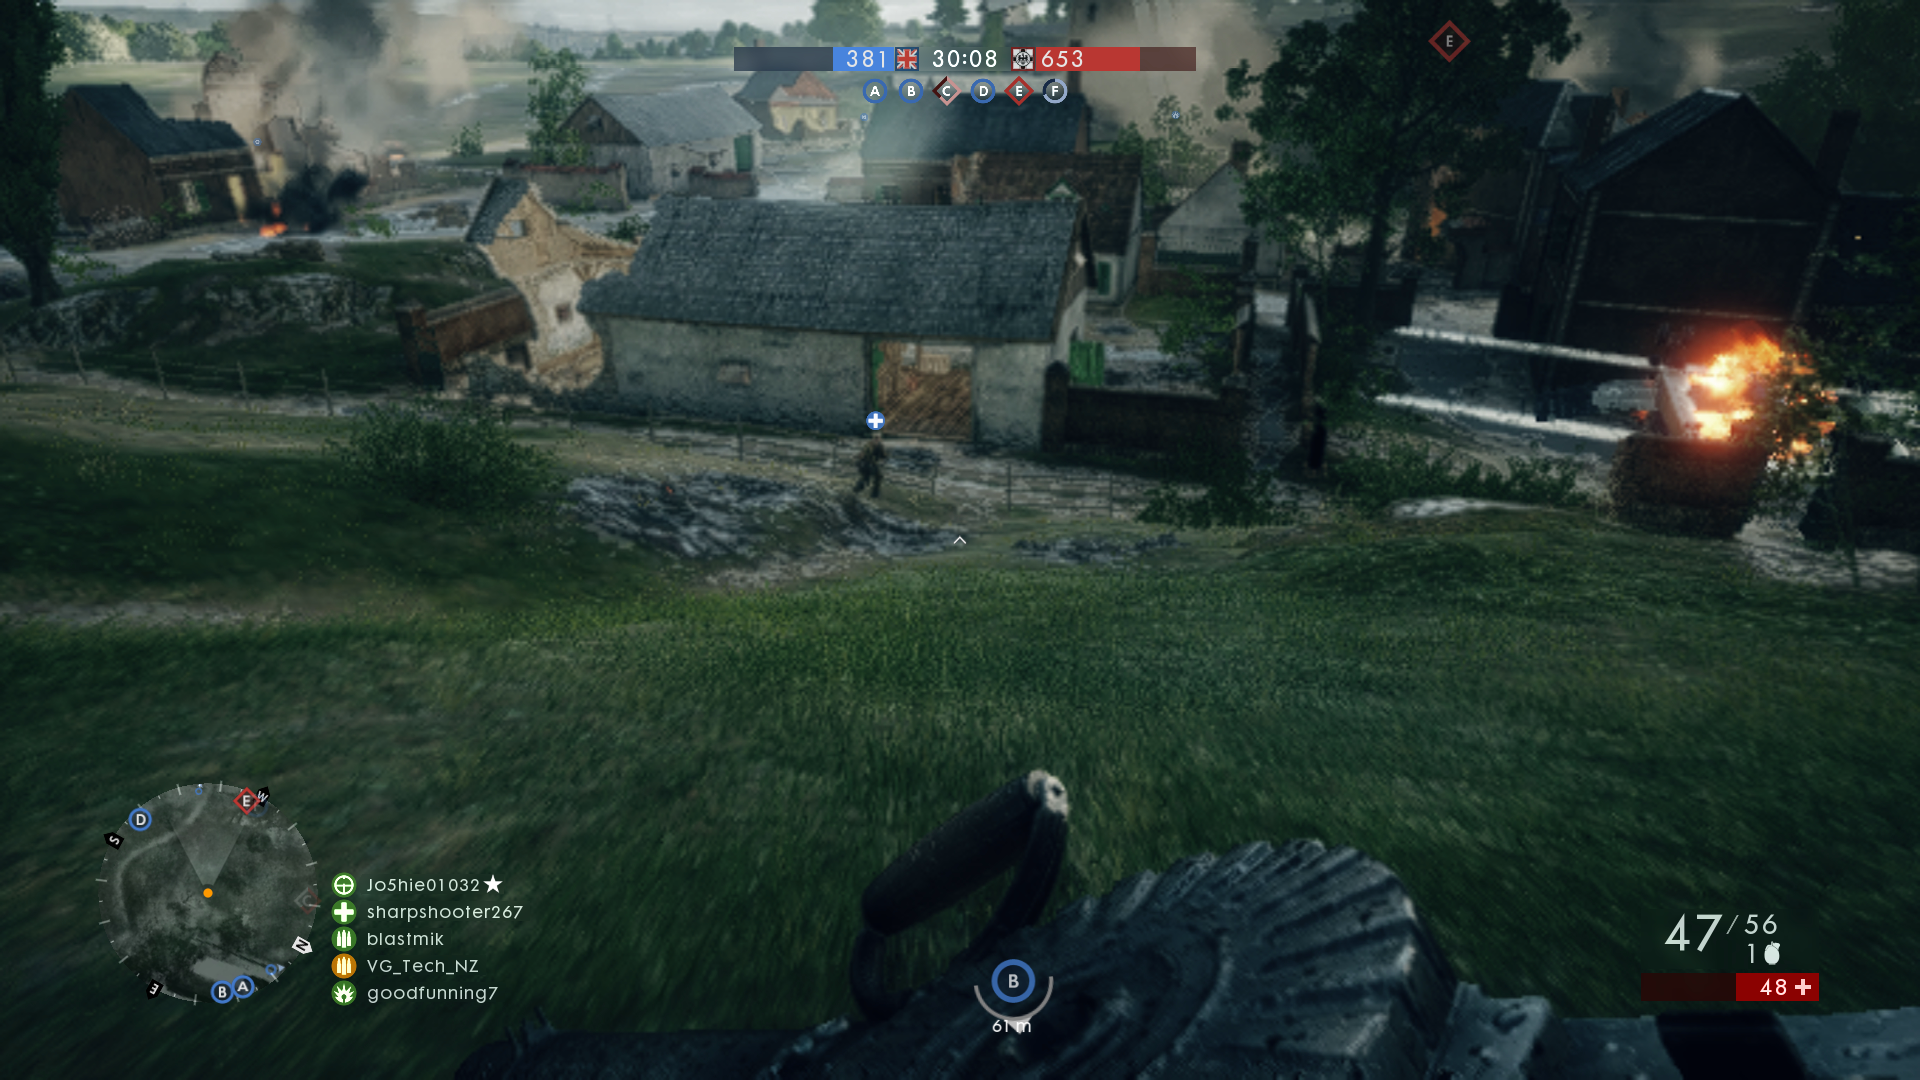 Battlefield 1 Drops to 160x90 Resolution on PlayStation 4, Thanks to